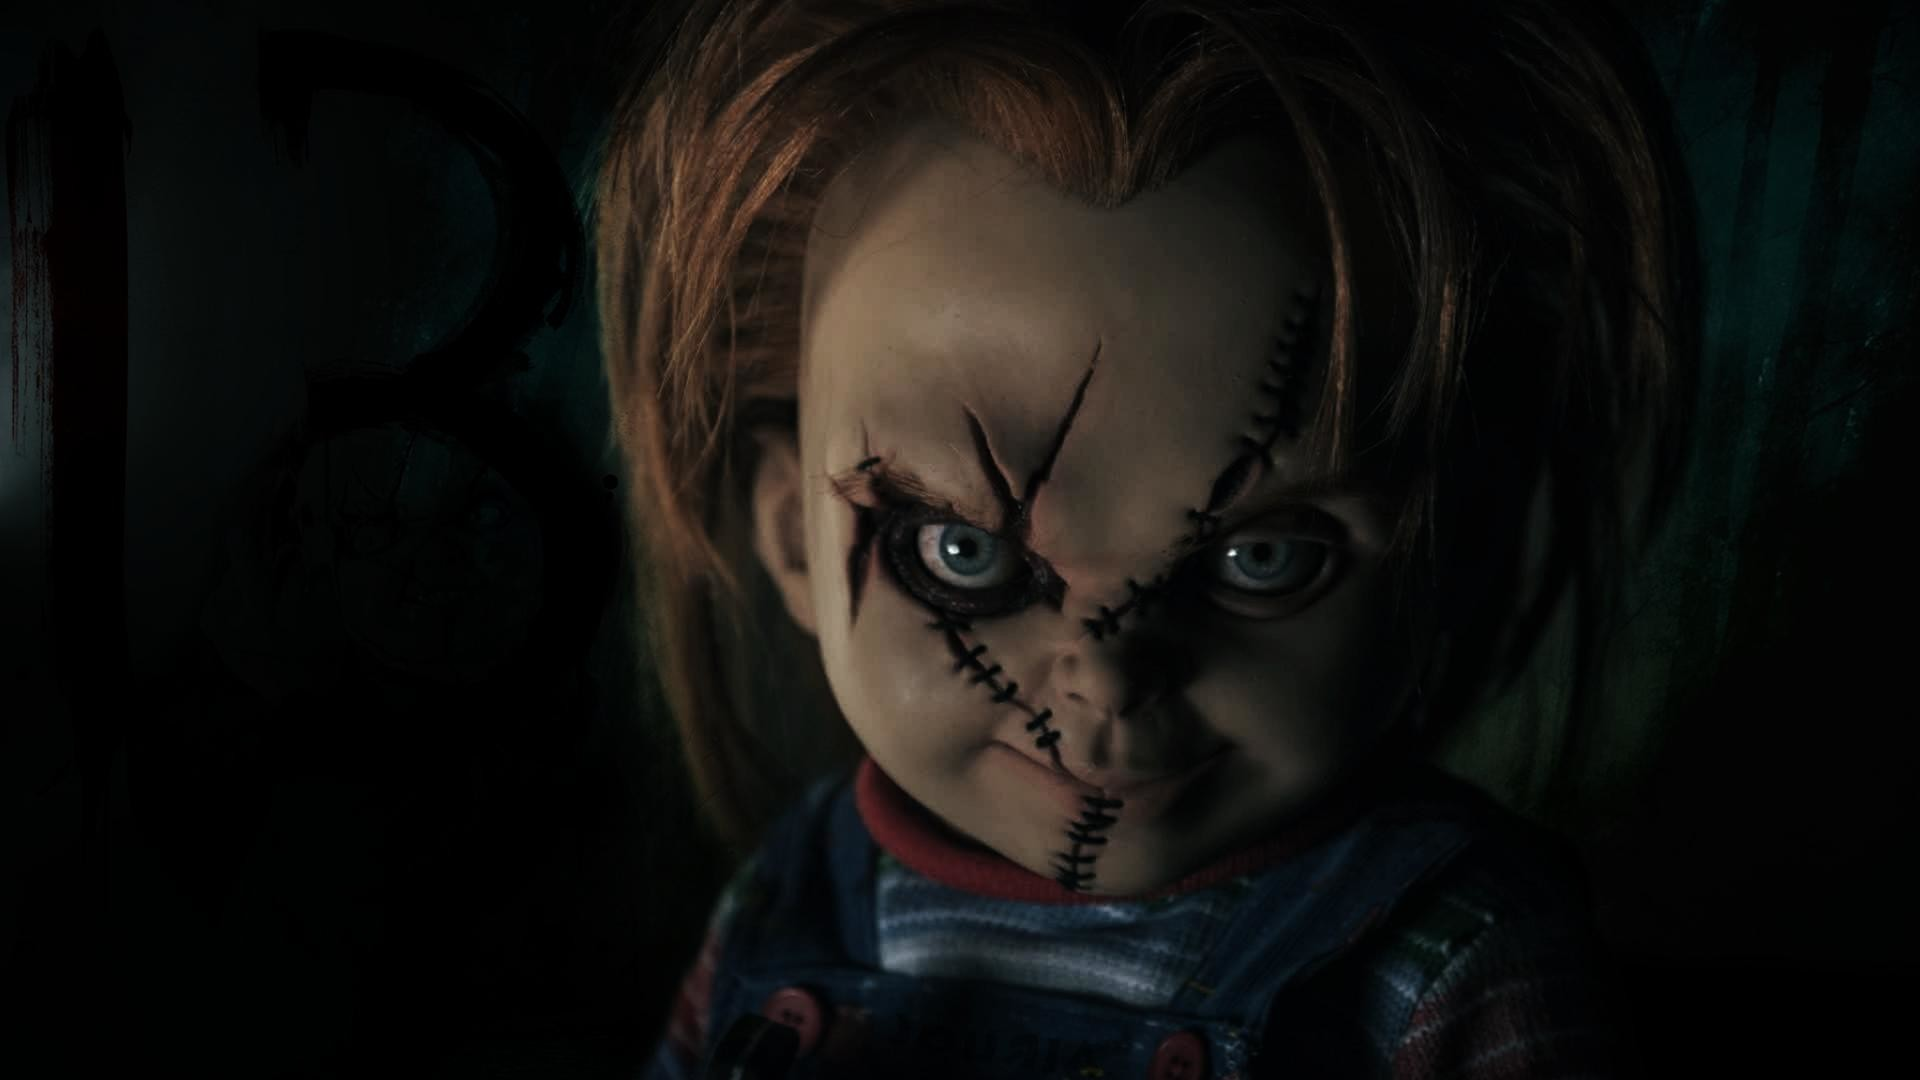 1920x1080 Images For Chucky Doll Wallpaper